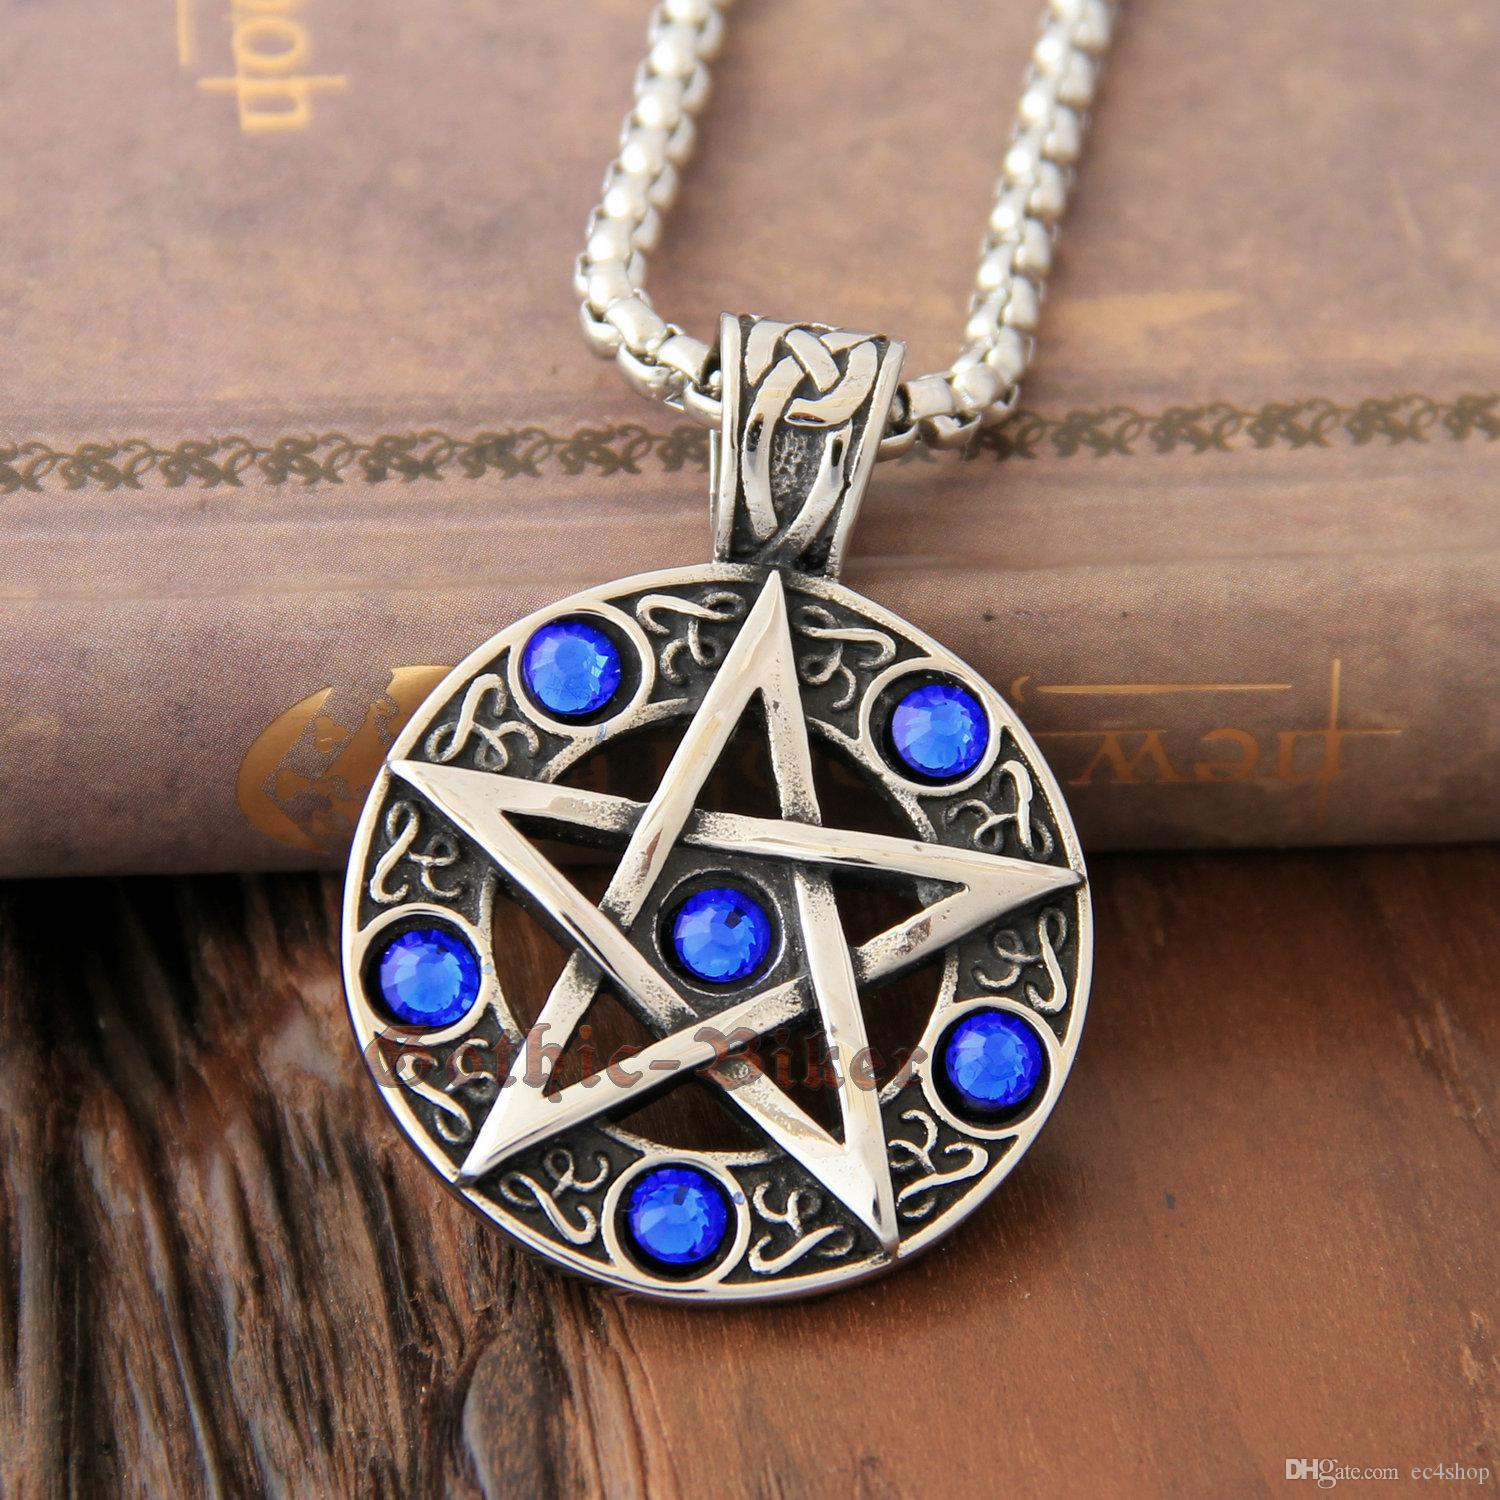 Wholesale celtic wicca pentacle pentagram star blue cz stones wholesale celtic wicca pentacle pentagram star blue cz stones stainless steel pendant witch and wizard magic witchcraft charm necklace charms charms for aloadofball